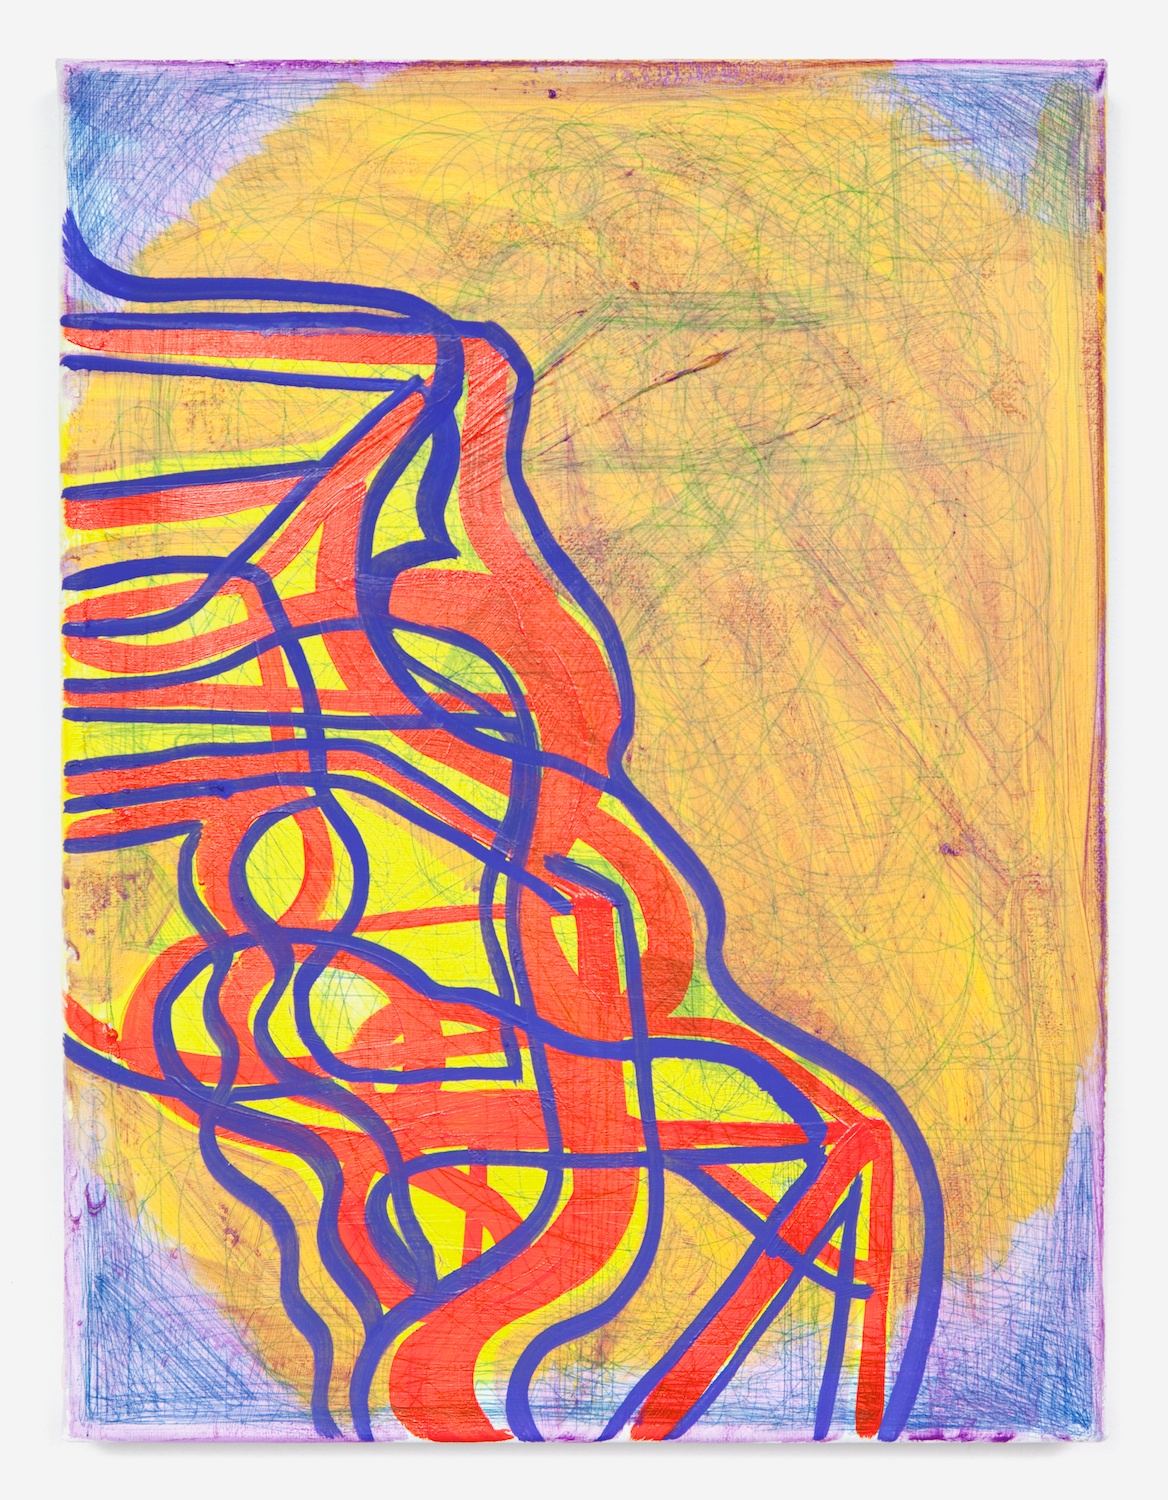 Joanne Greenbaum  Untitled  2011 Oil, acrylic and mixed media on linen 16h x 12w in JG024